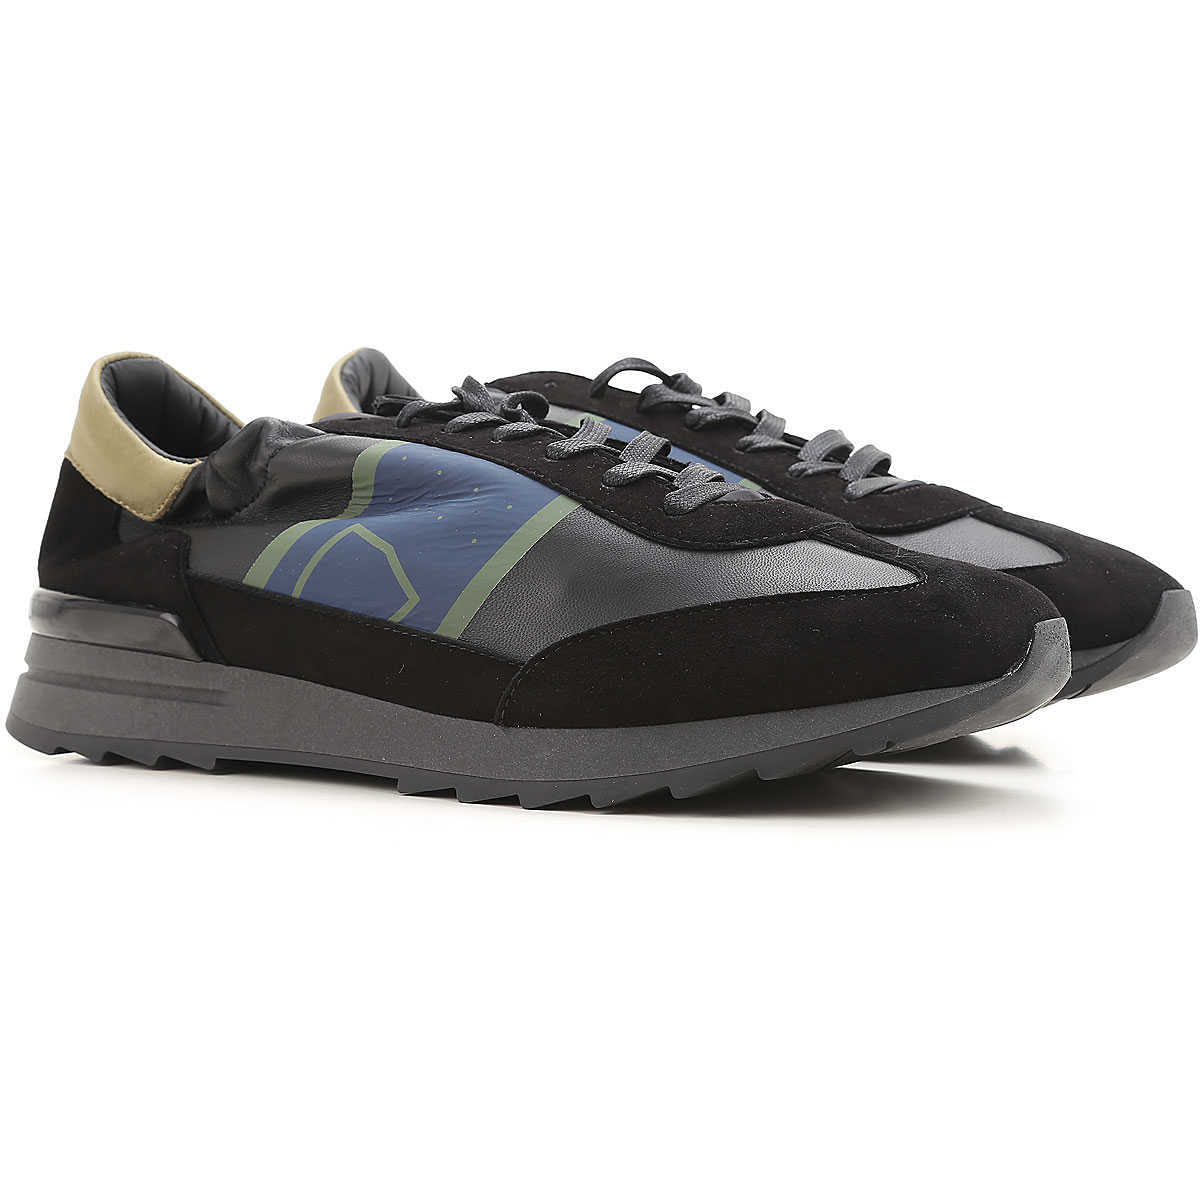 Philippe Model Sneakers for Men On Sale in Outlet Black DK - GOOFASH - Mens SNEAKER